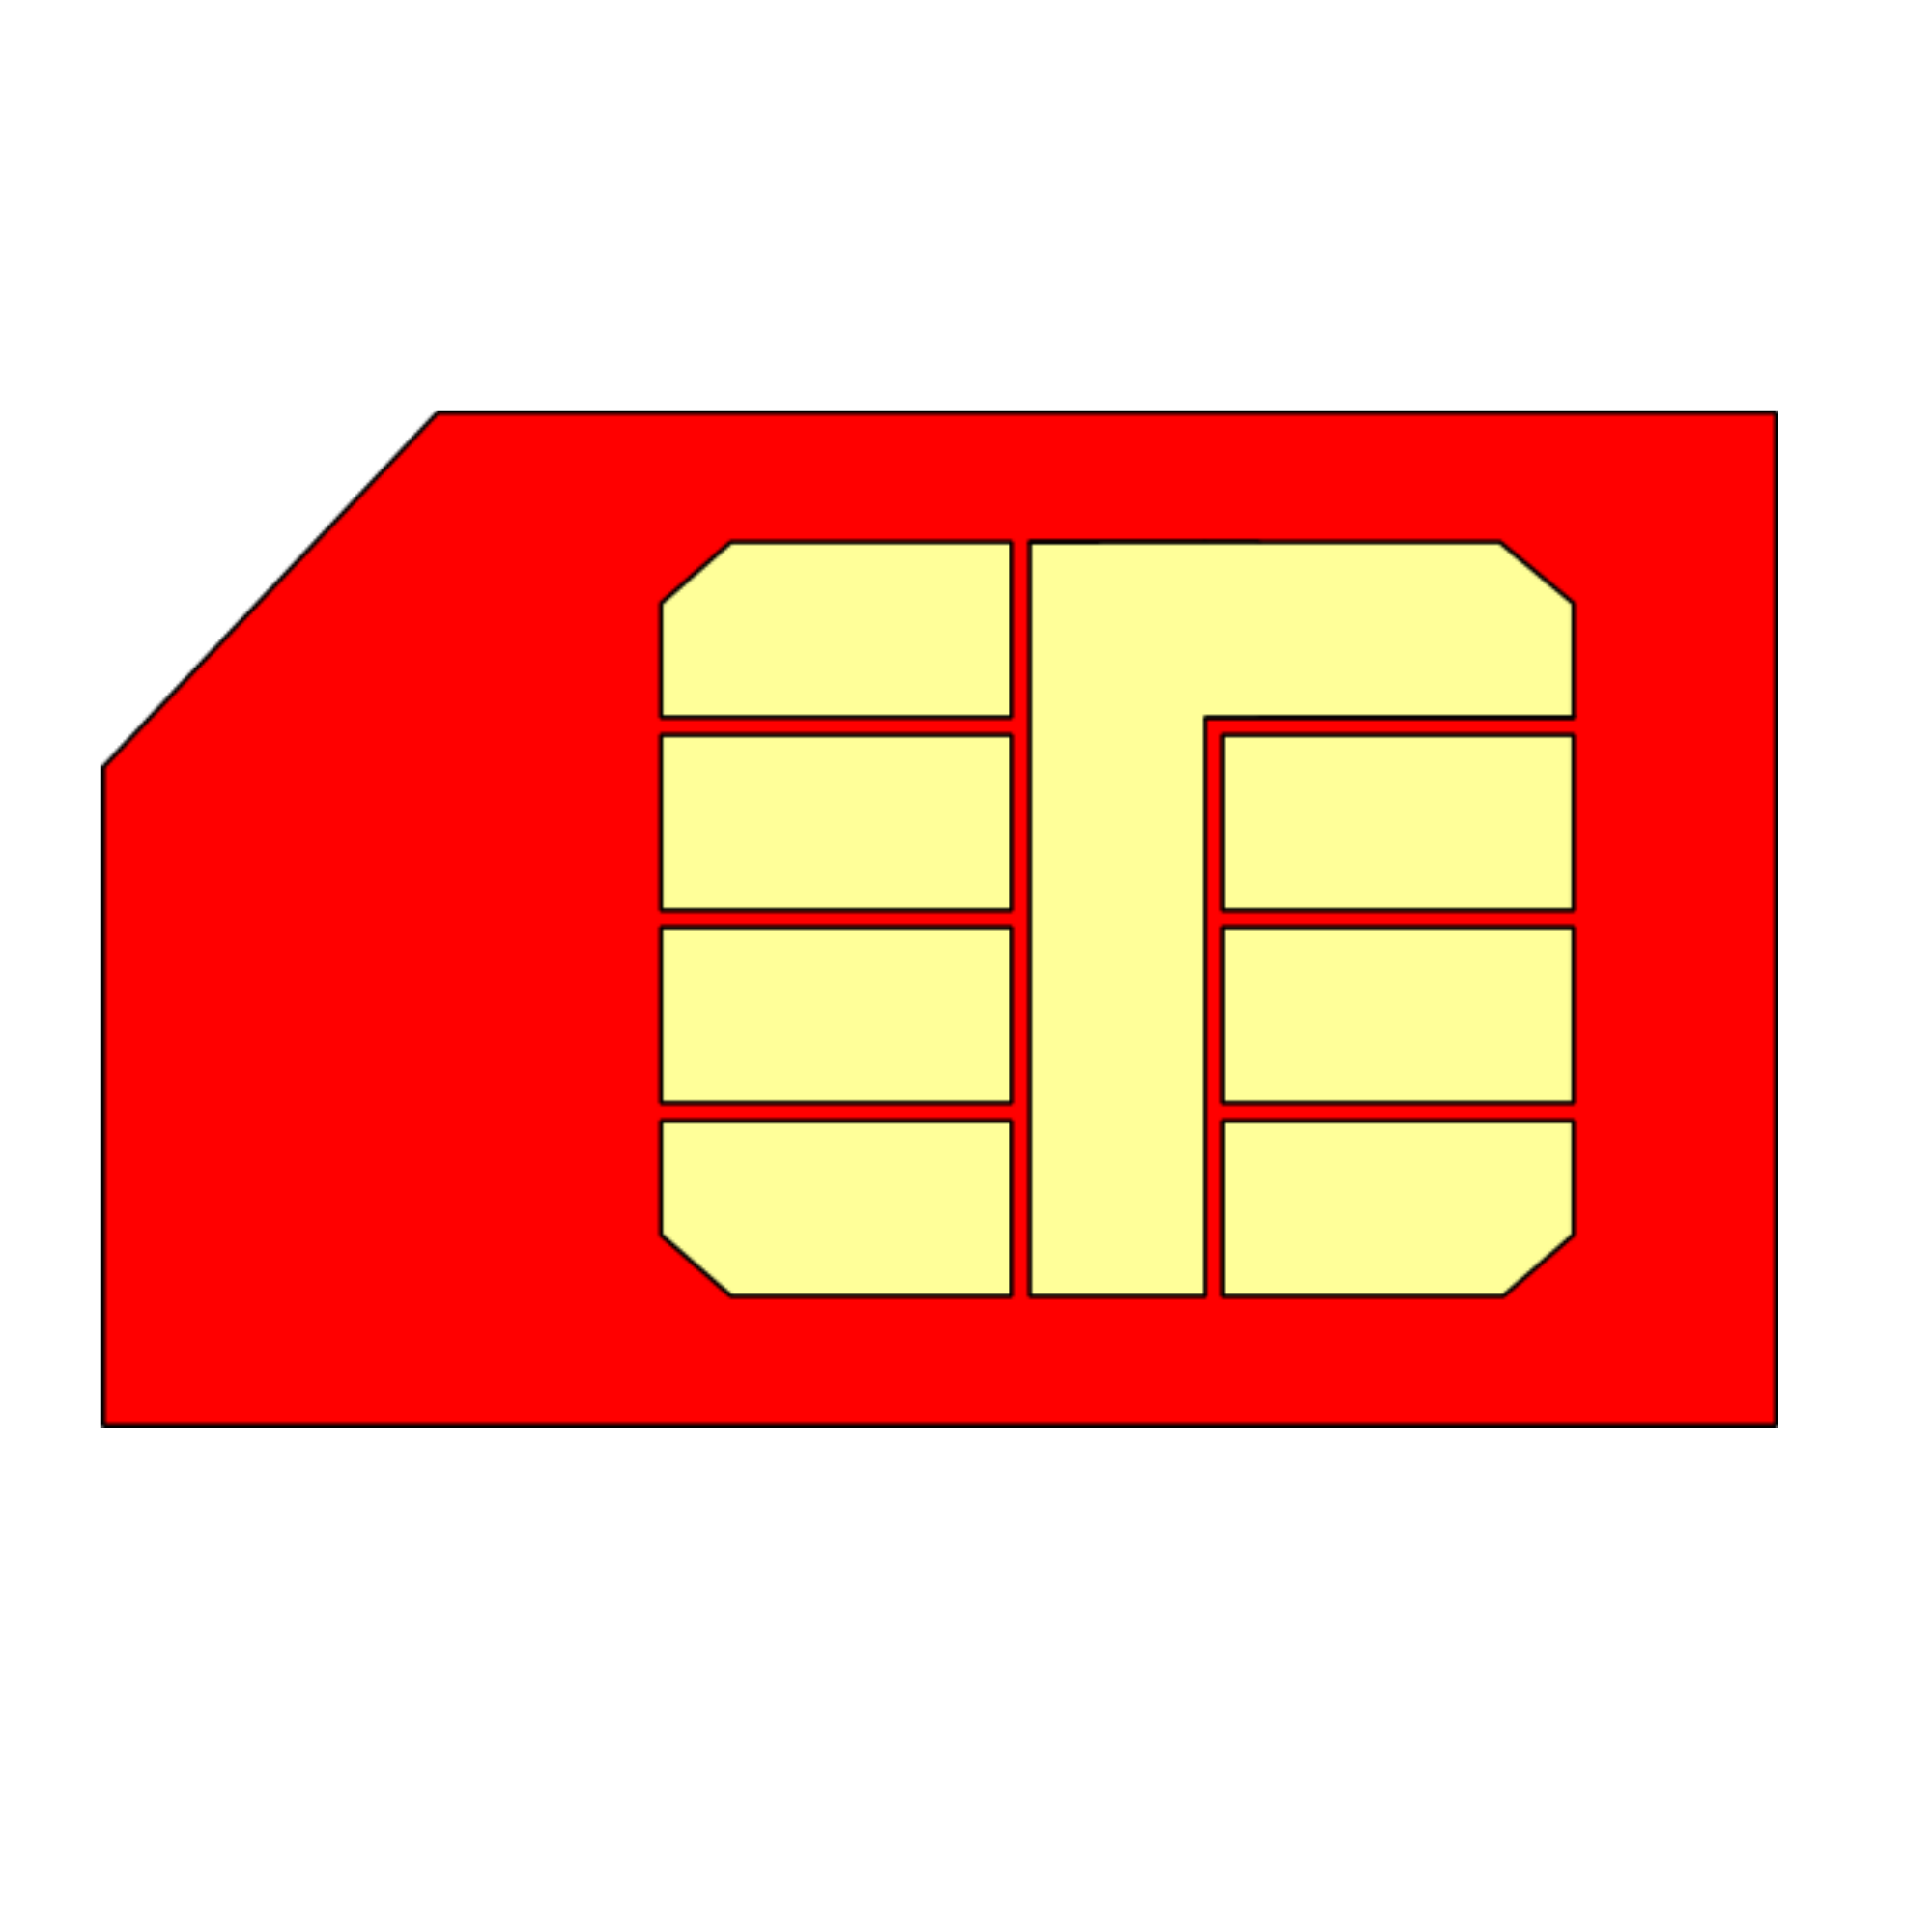 Sim Cards image PNG.